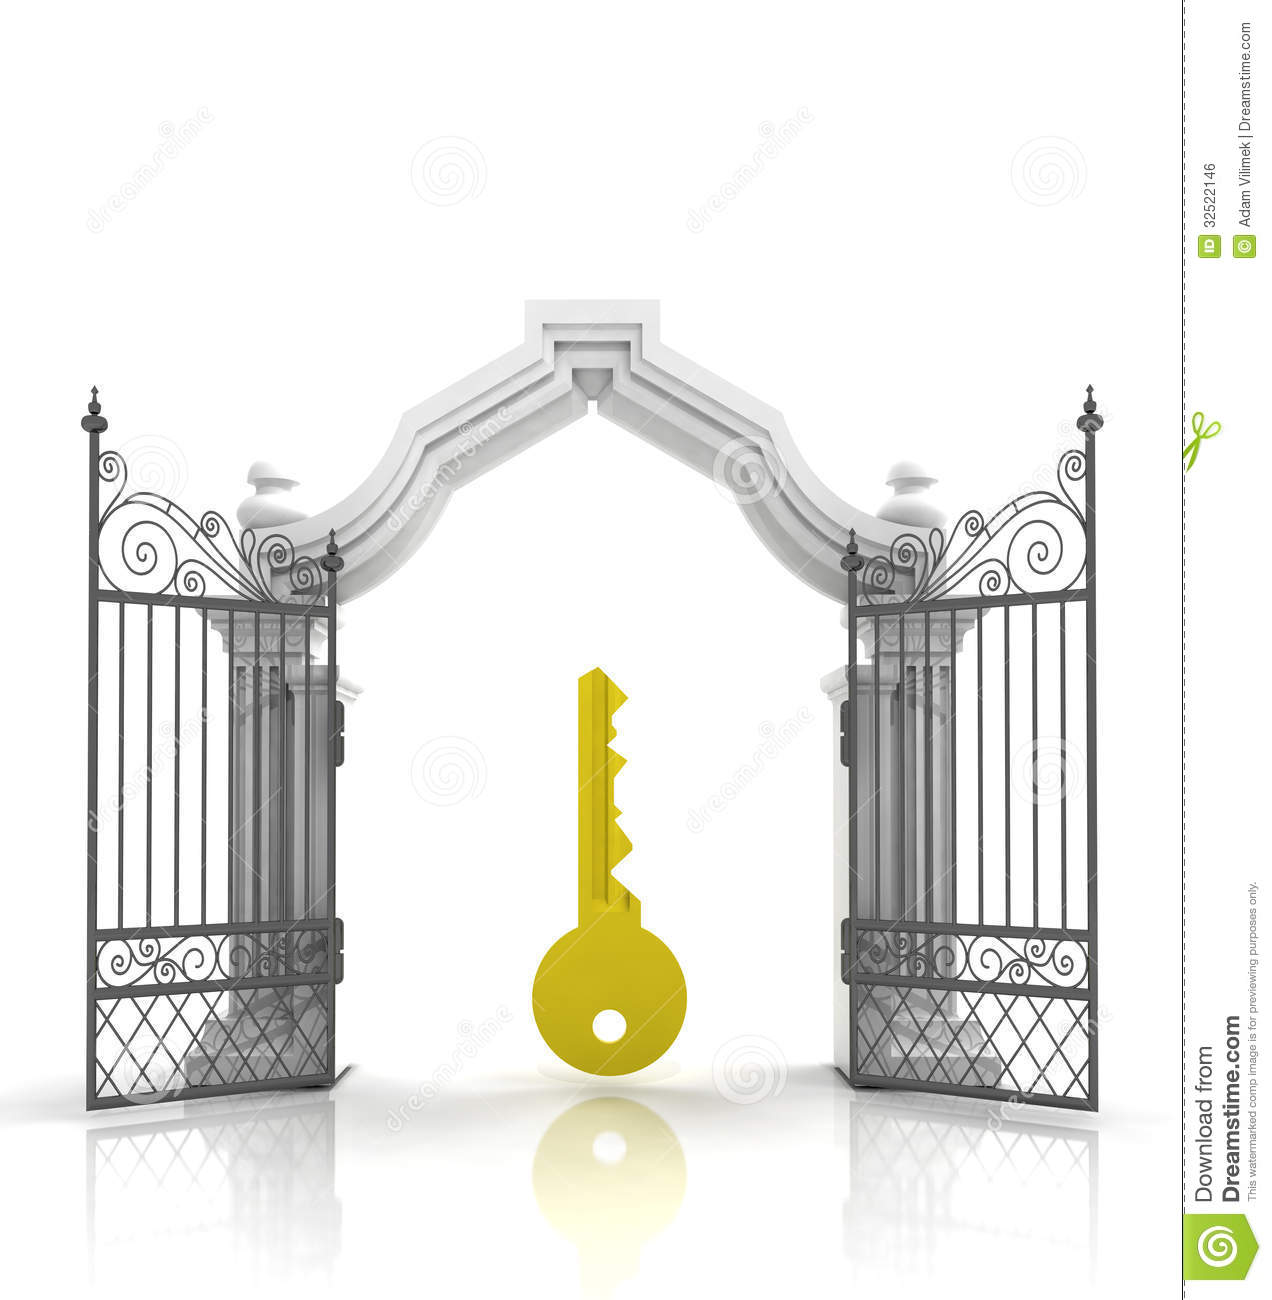 Open Baroque Gate With Golden Key Royalty Free Stock Image   Image